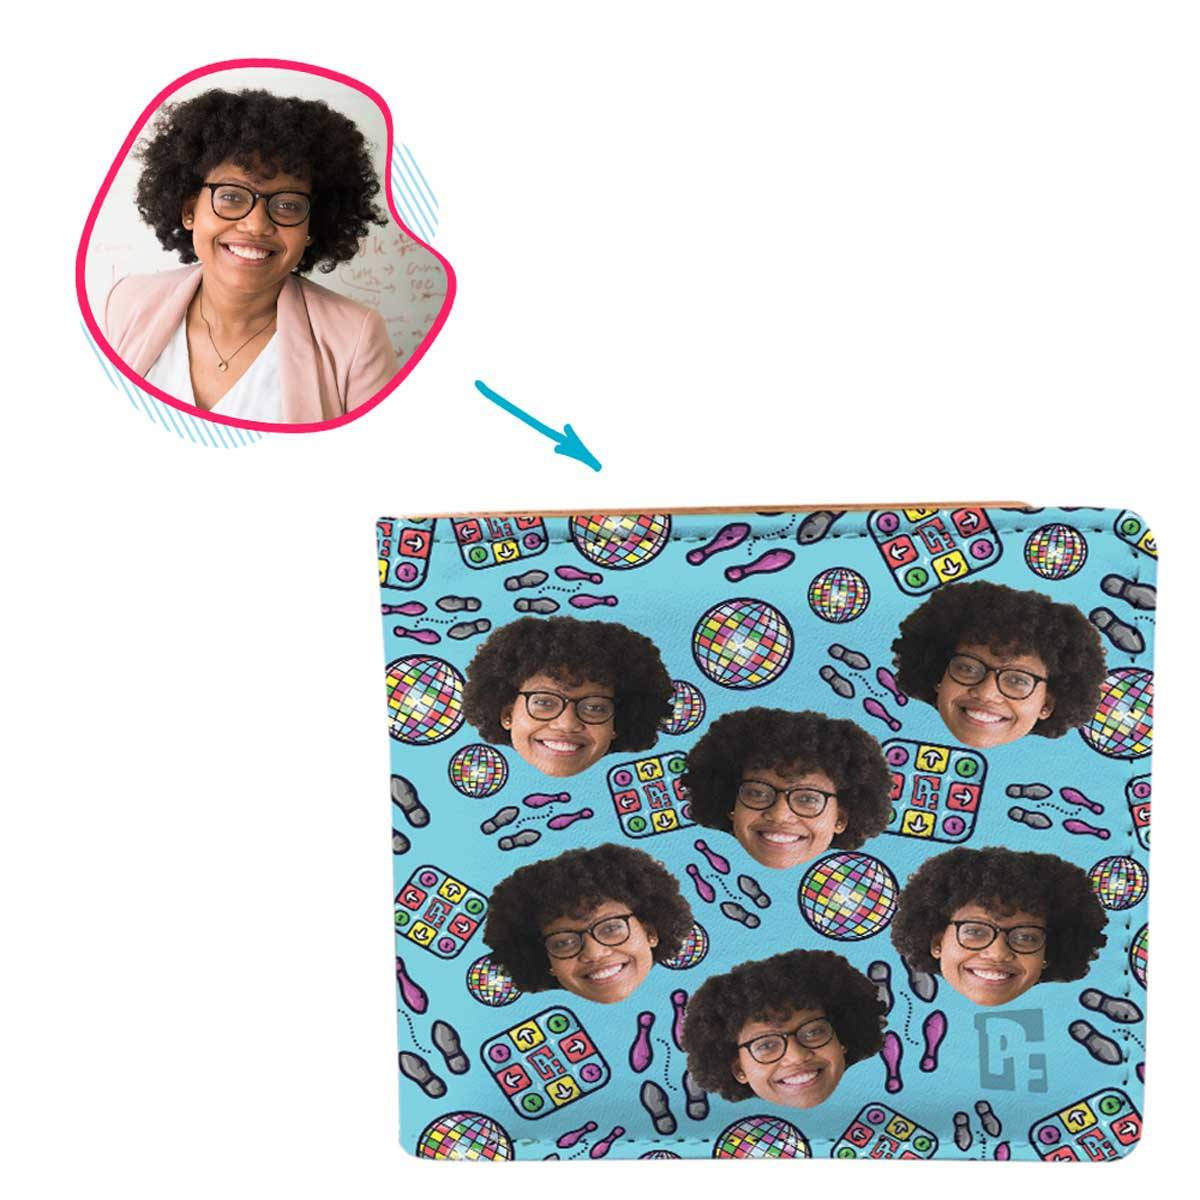 blue Dancing wallet personalized with photo of face printed on it